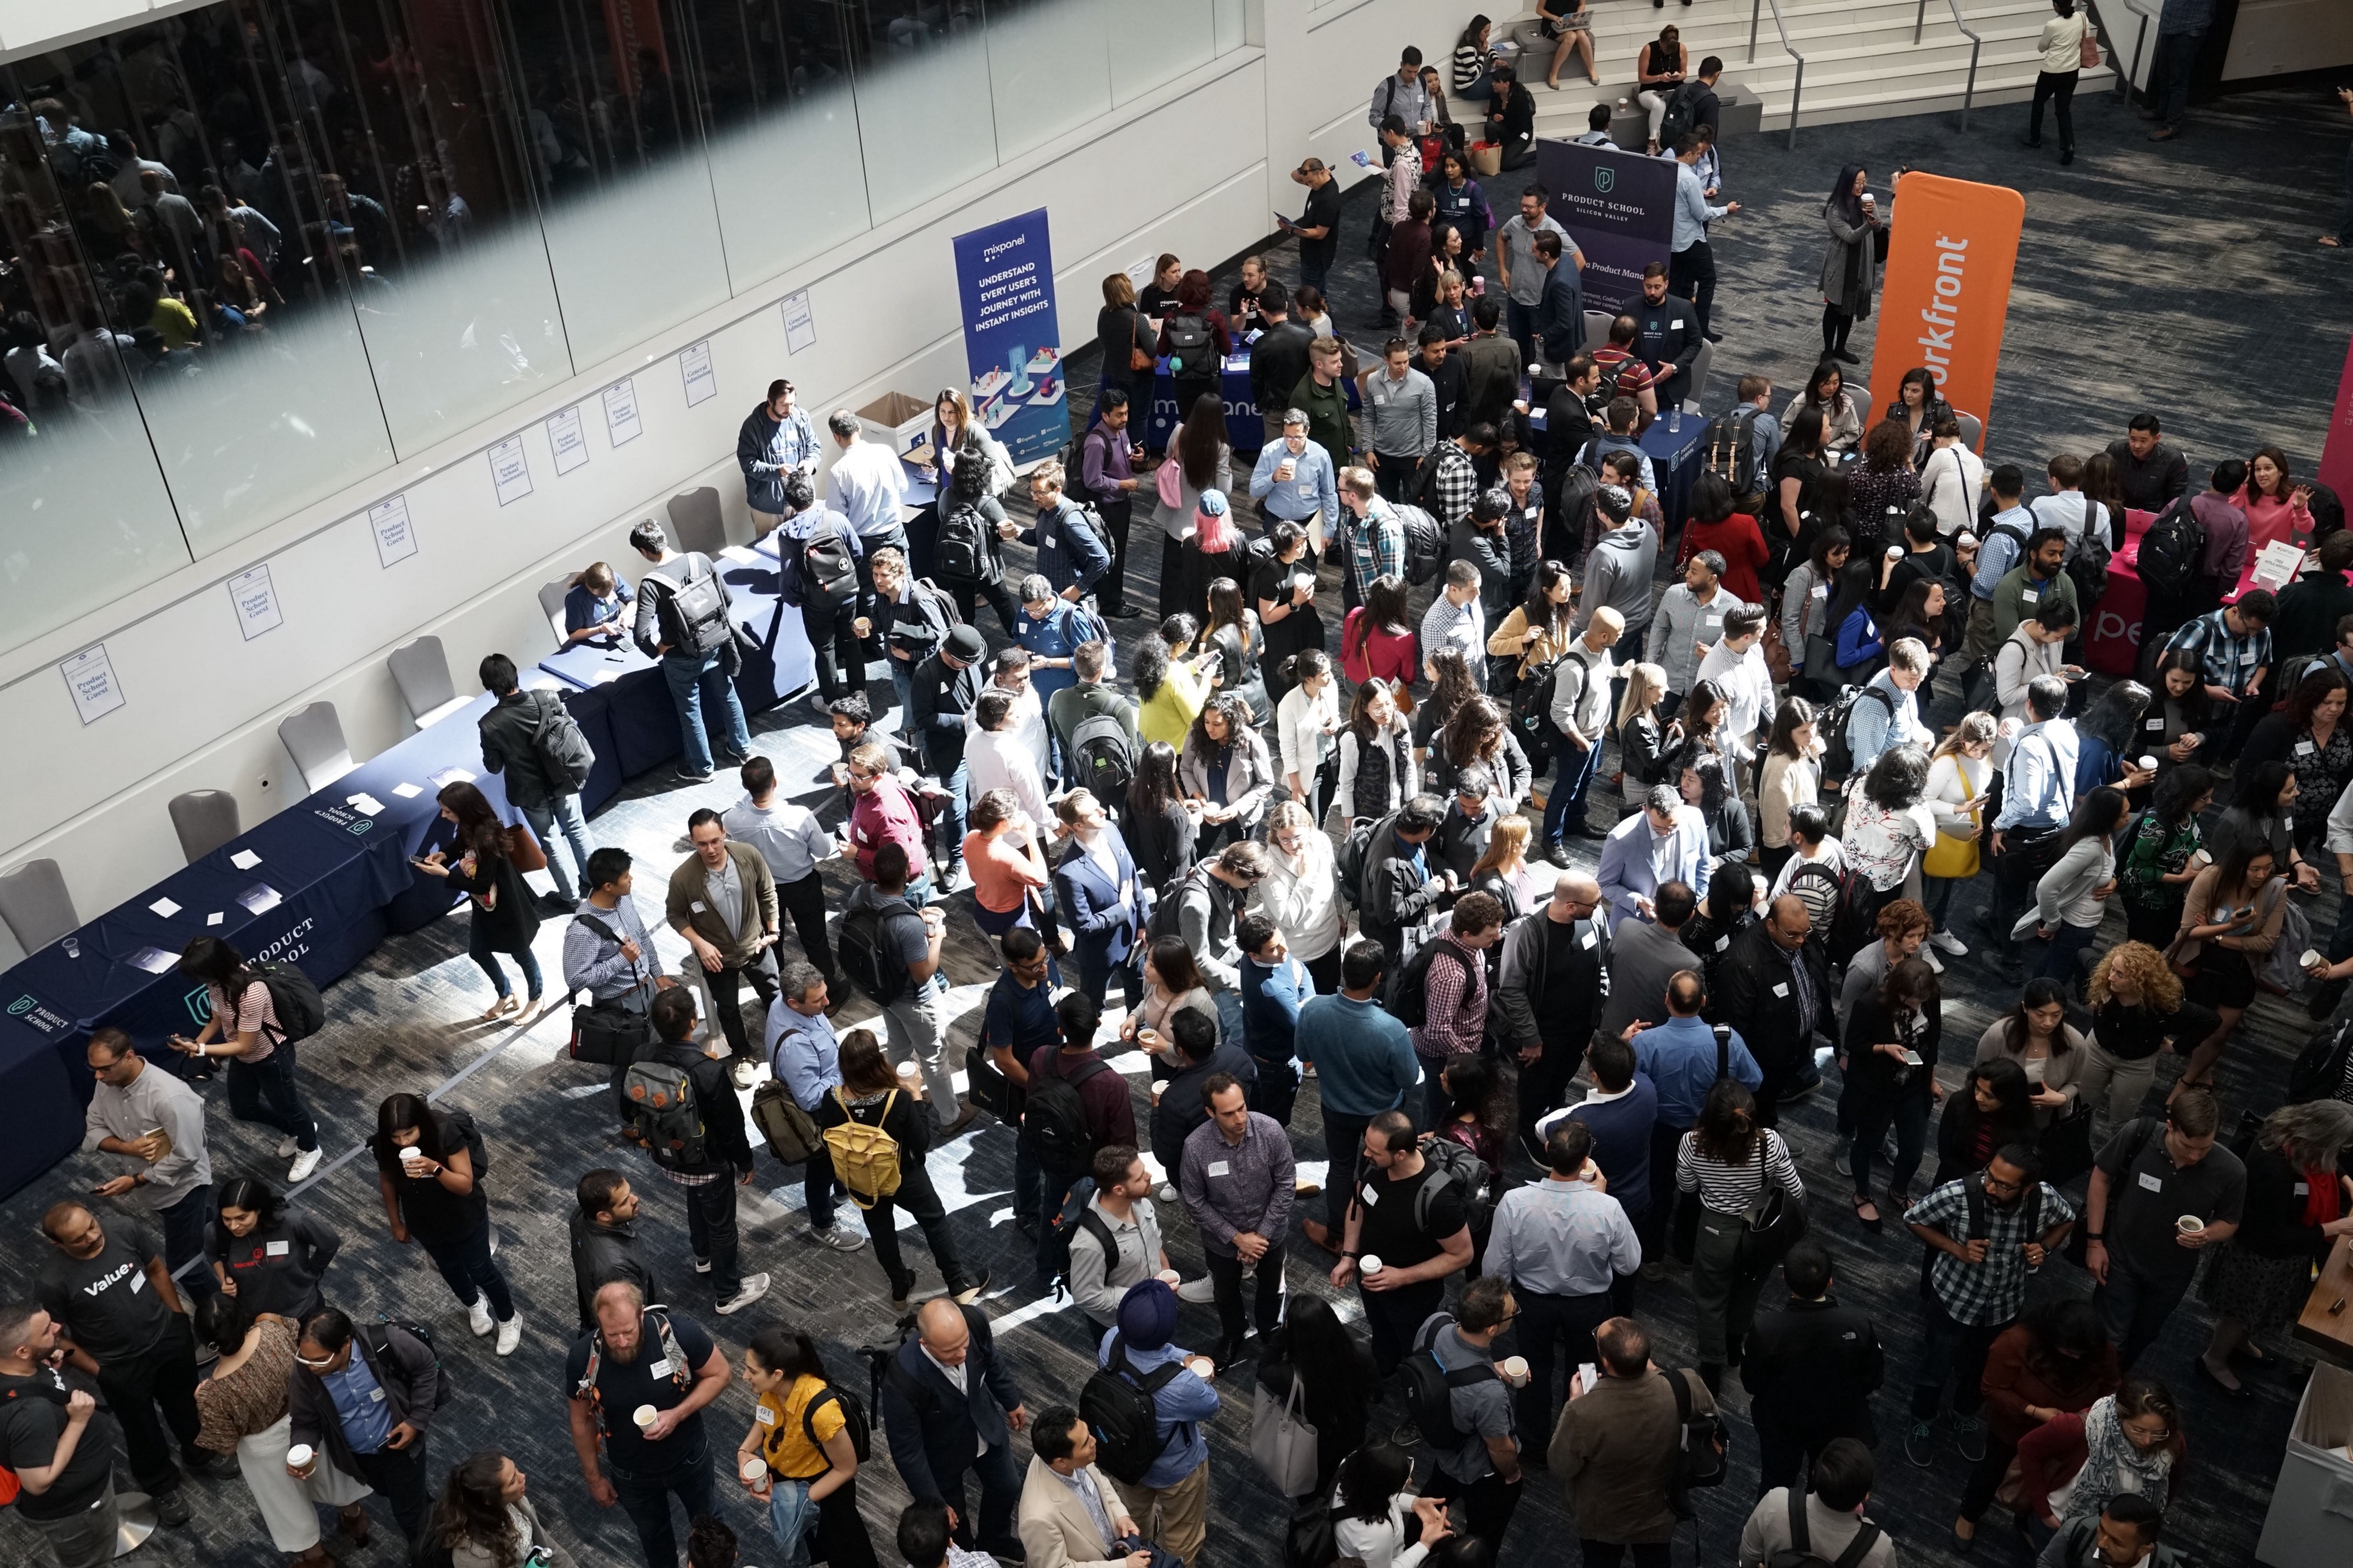 Photo of a crowd of people at a convention